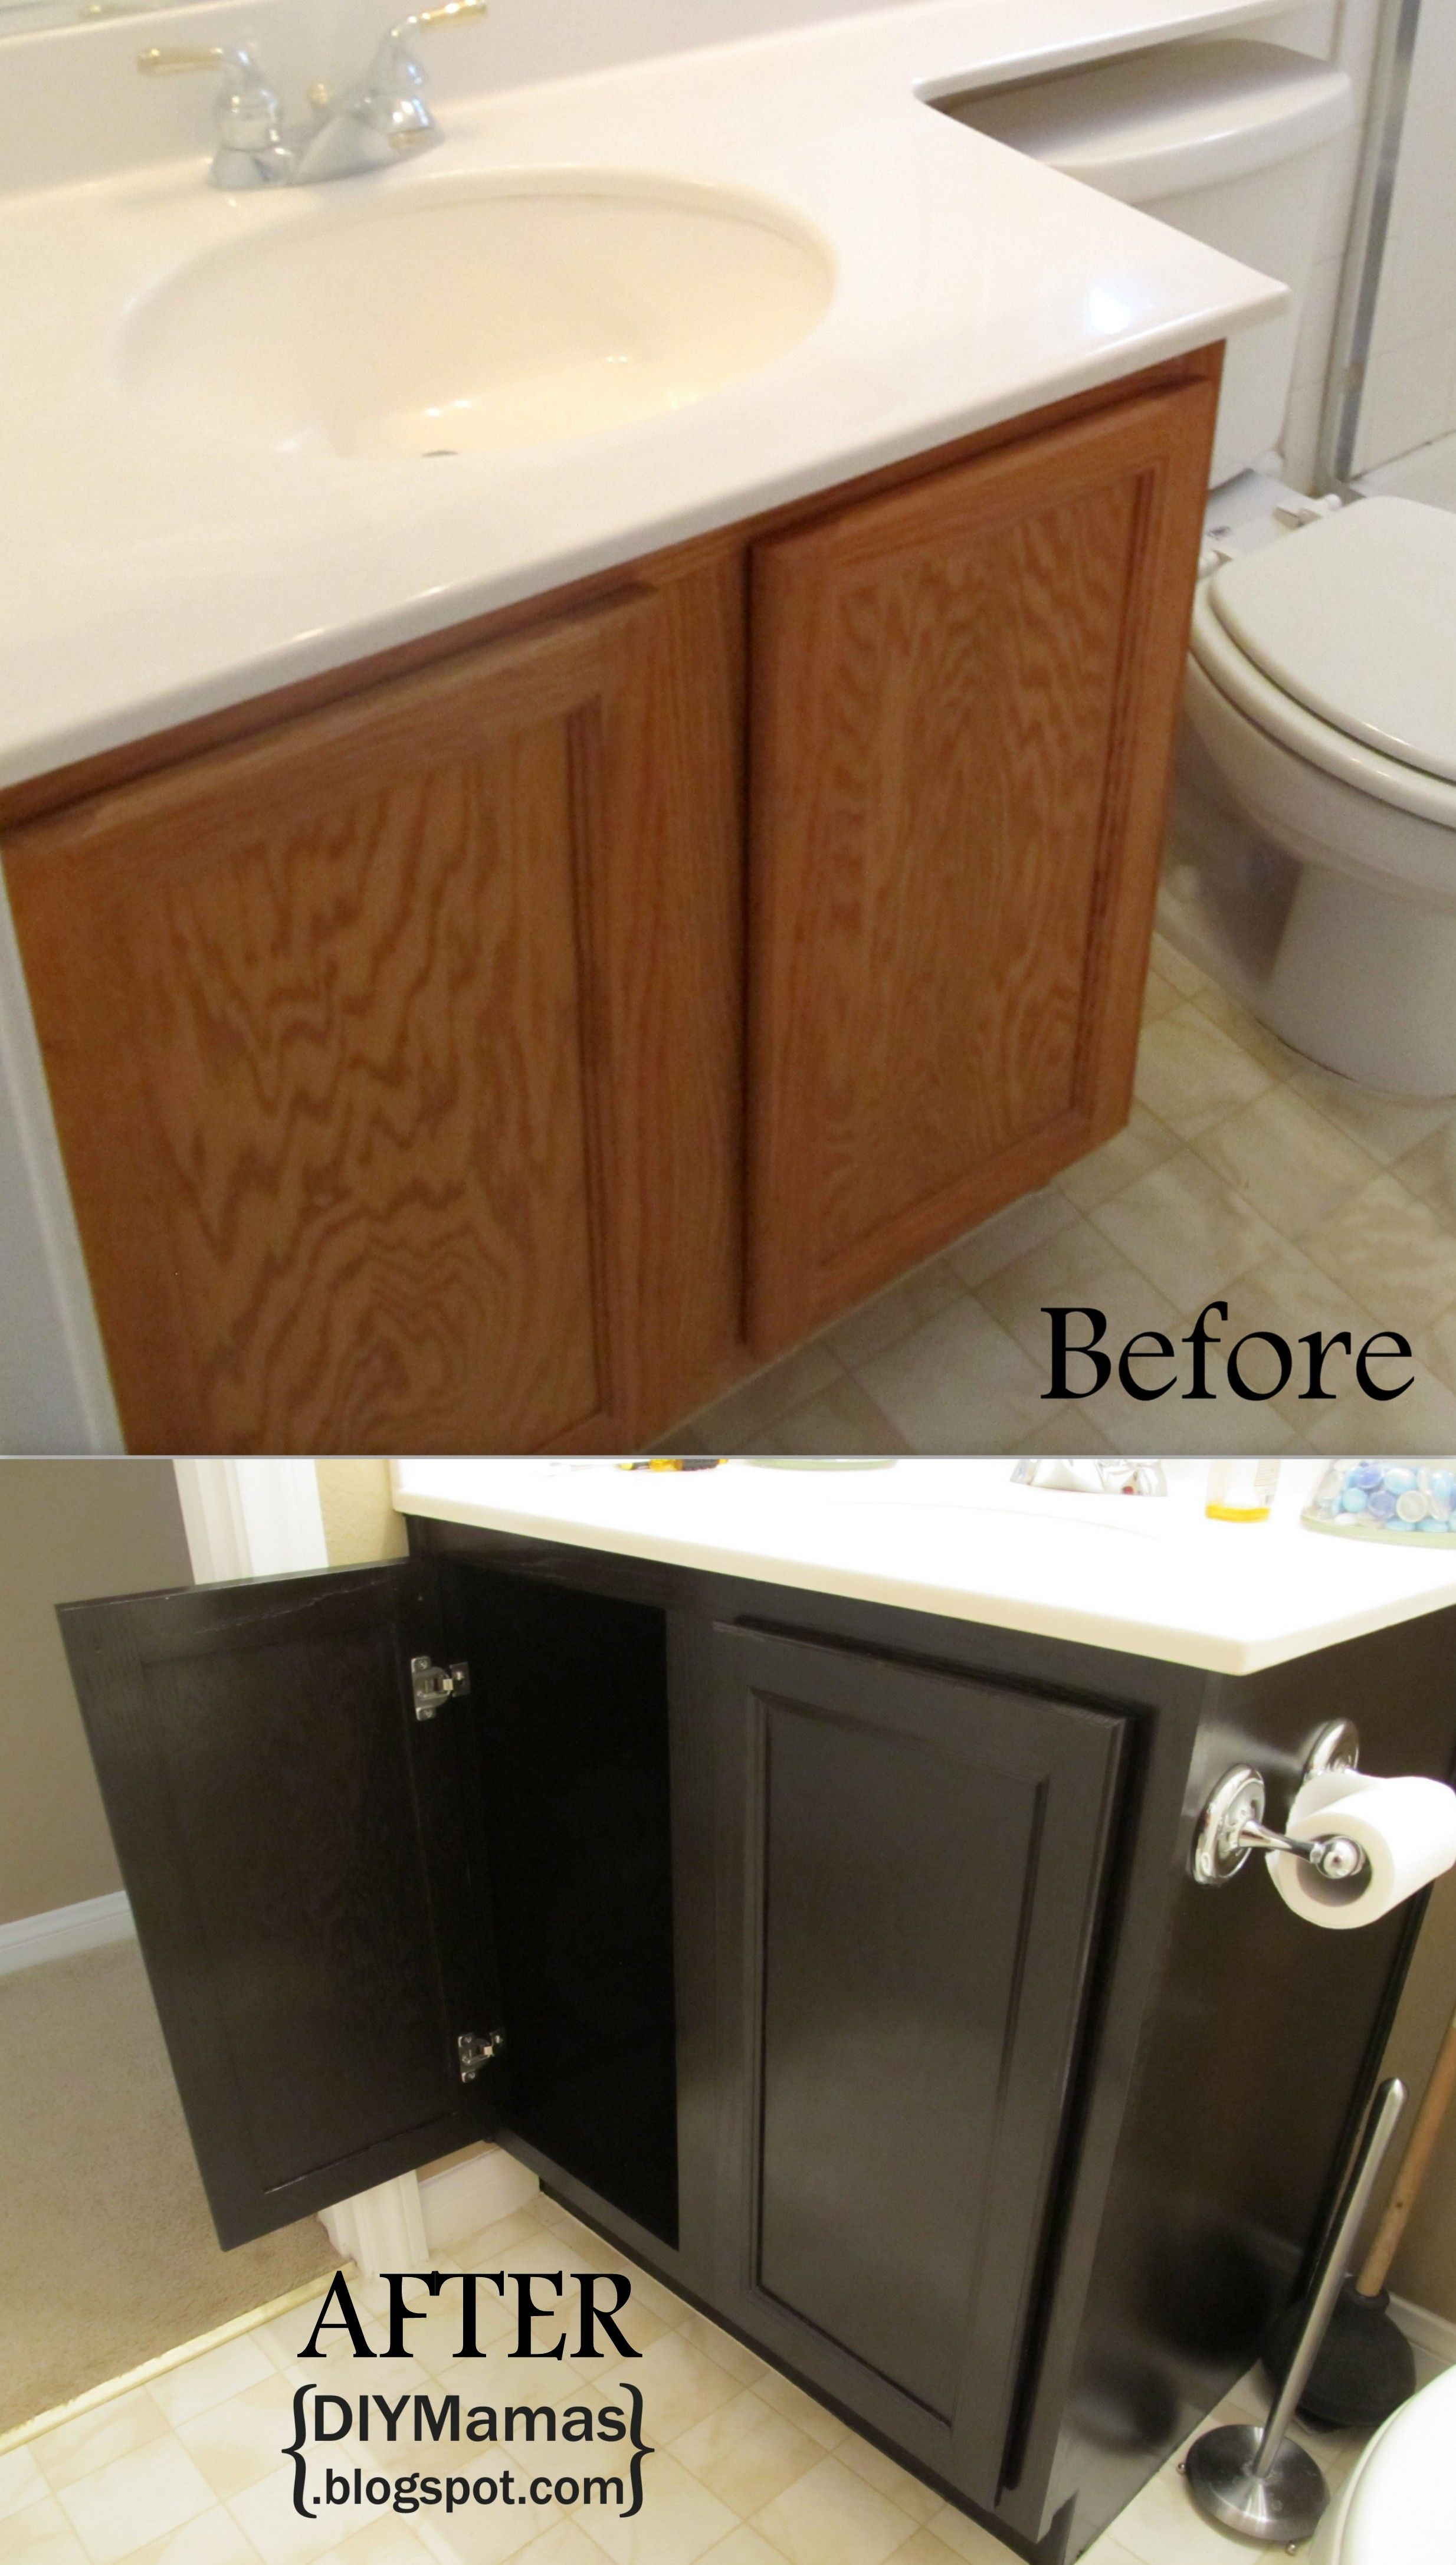 How To Paint Over Stained Bathroom Cabinets 17 best images about diy projects on pinterest | kreg jig, cubes